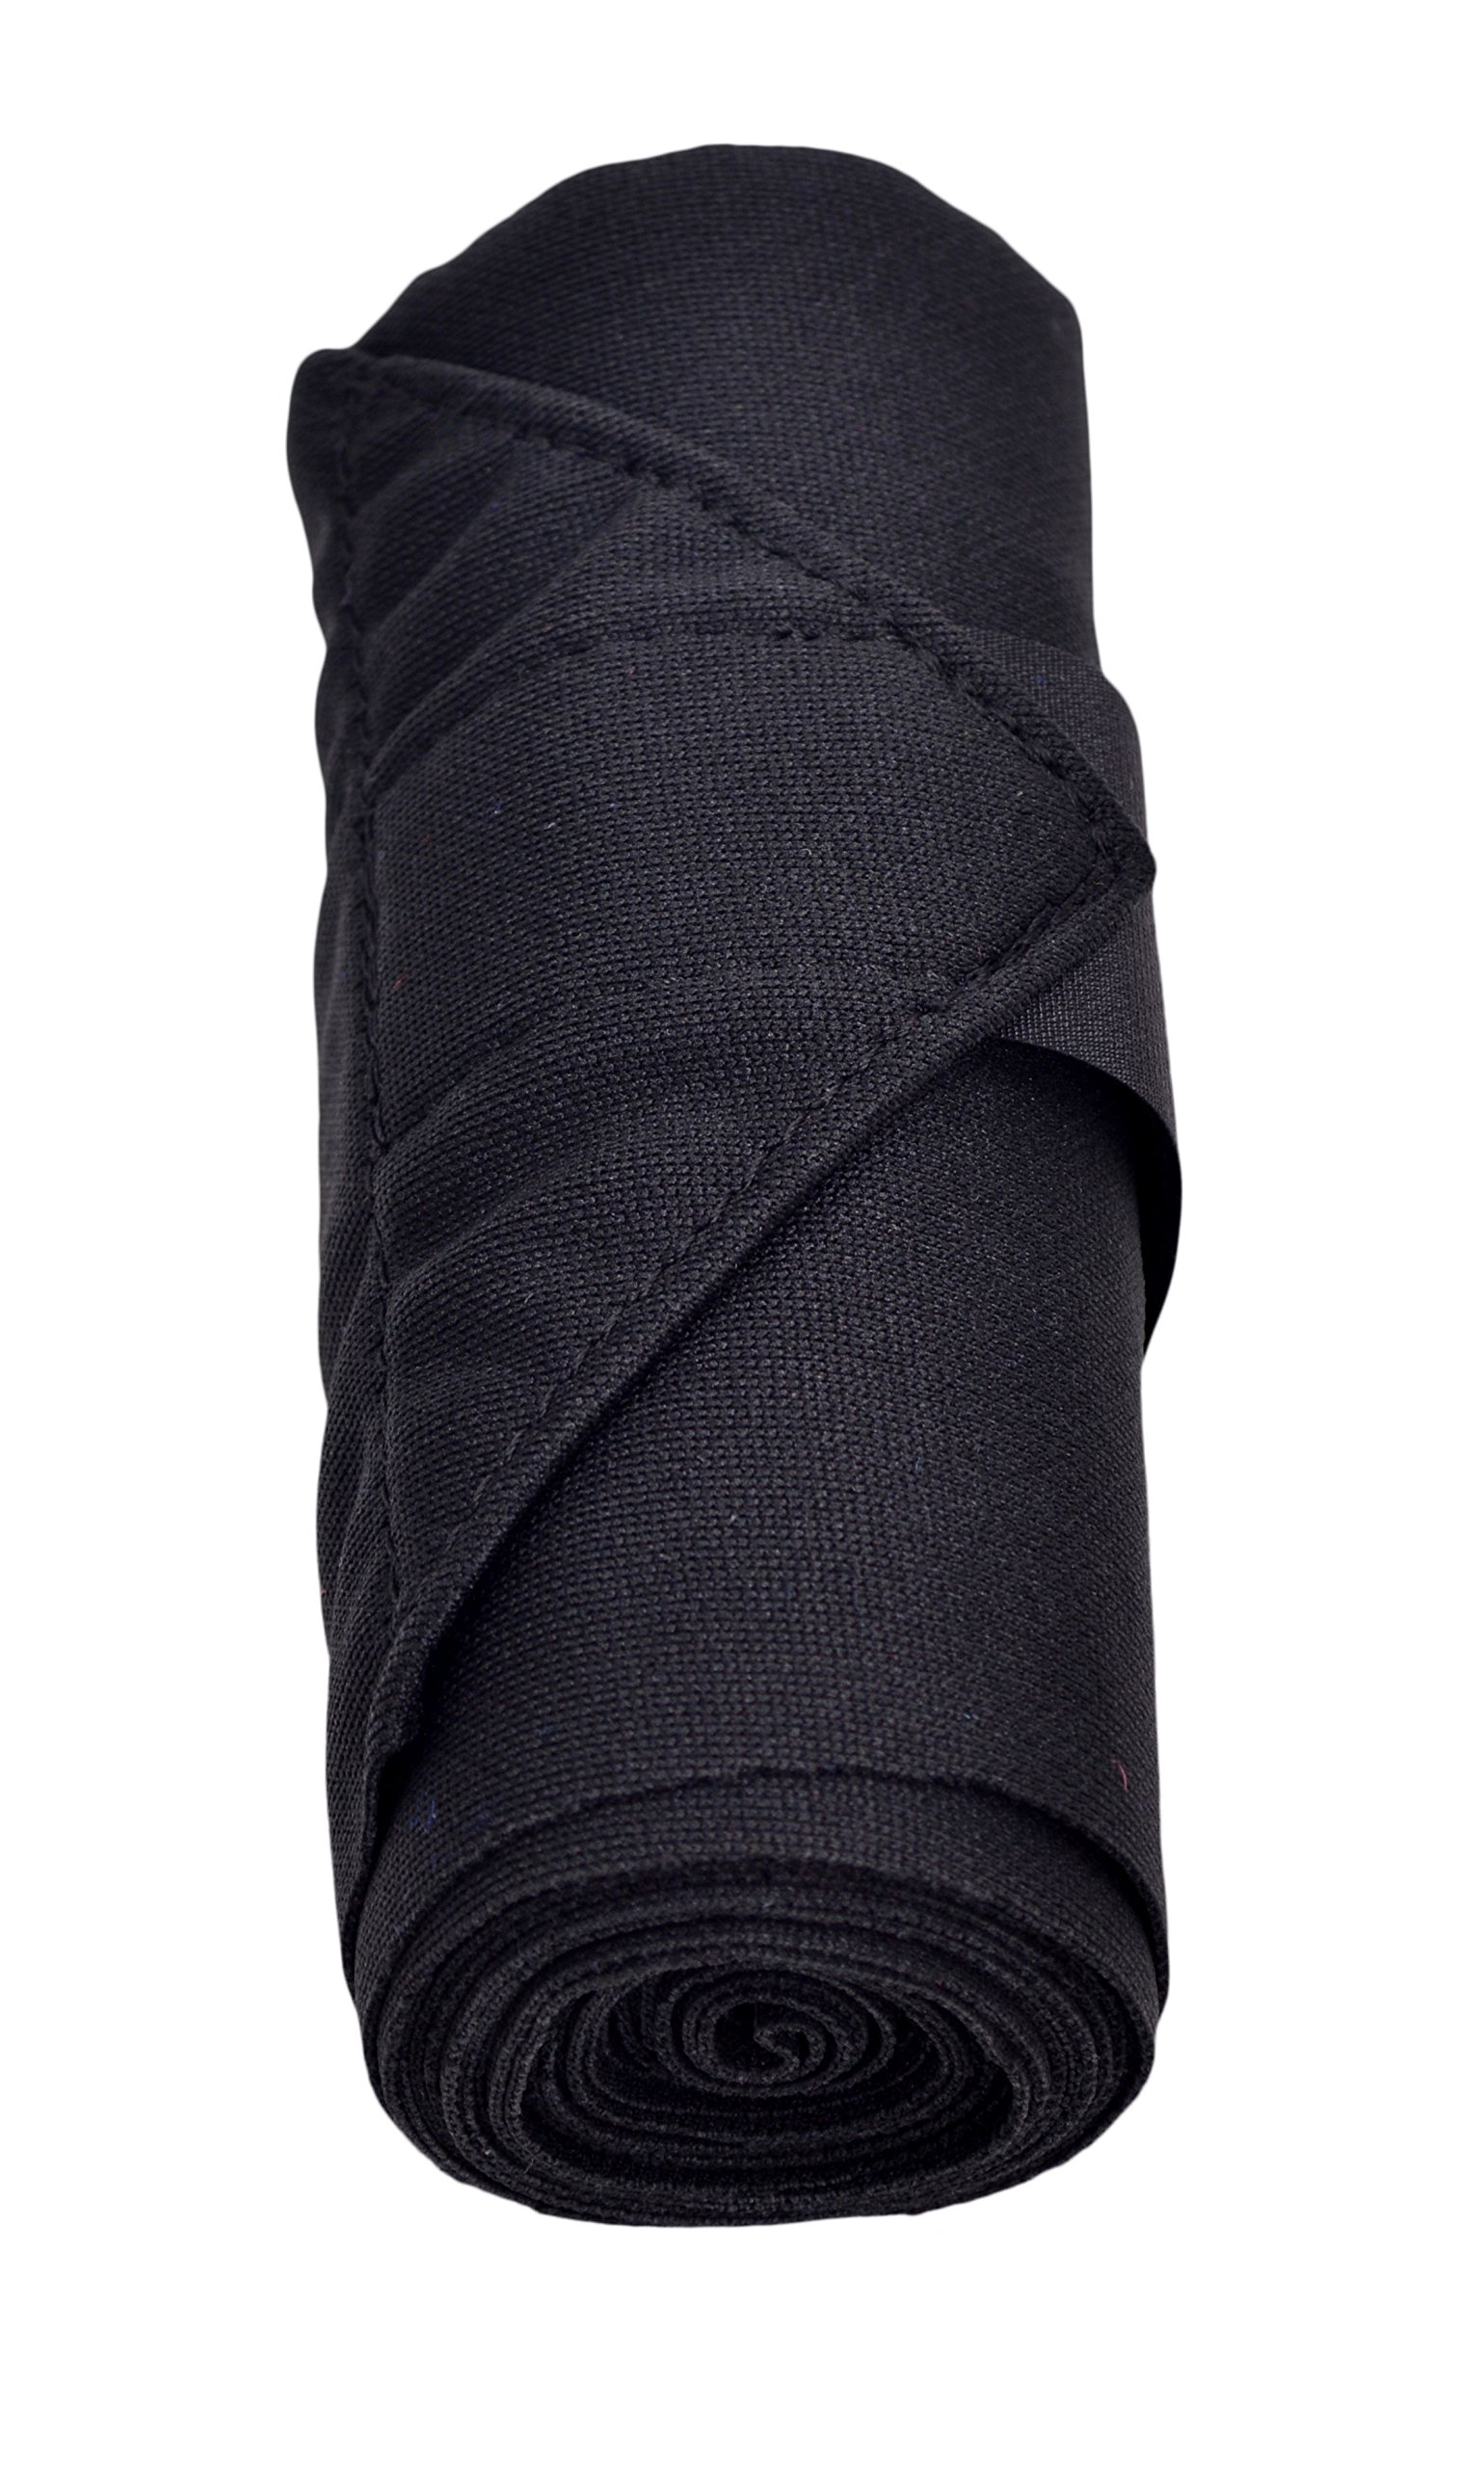 Lami-Cell Standing Wraps Black